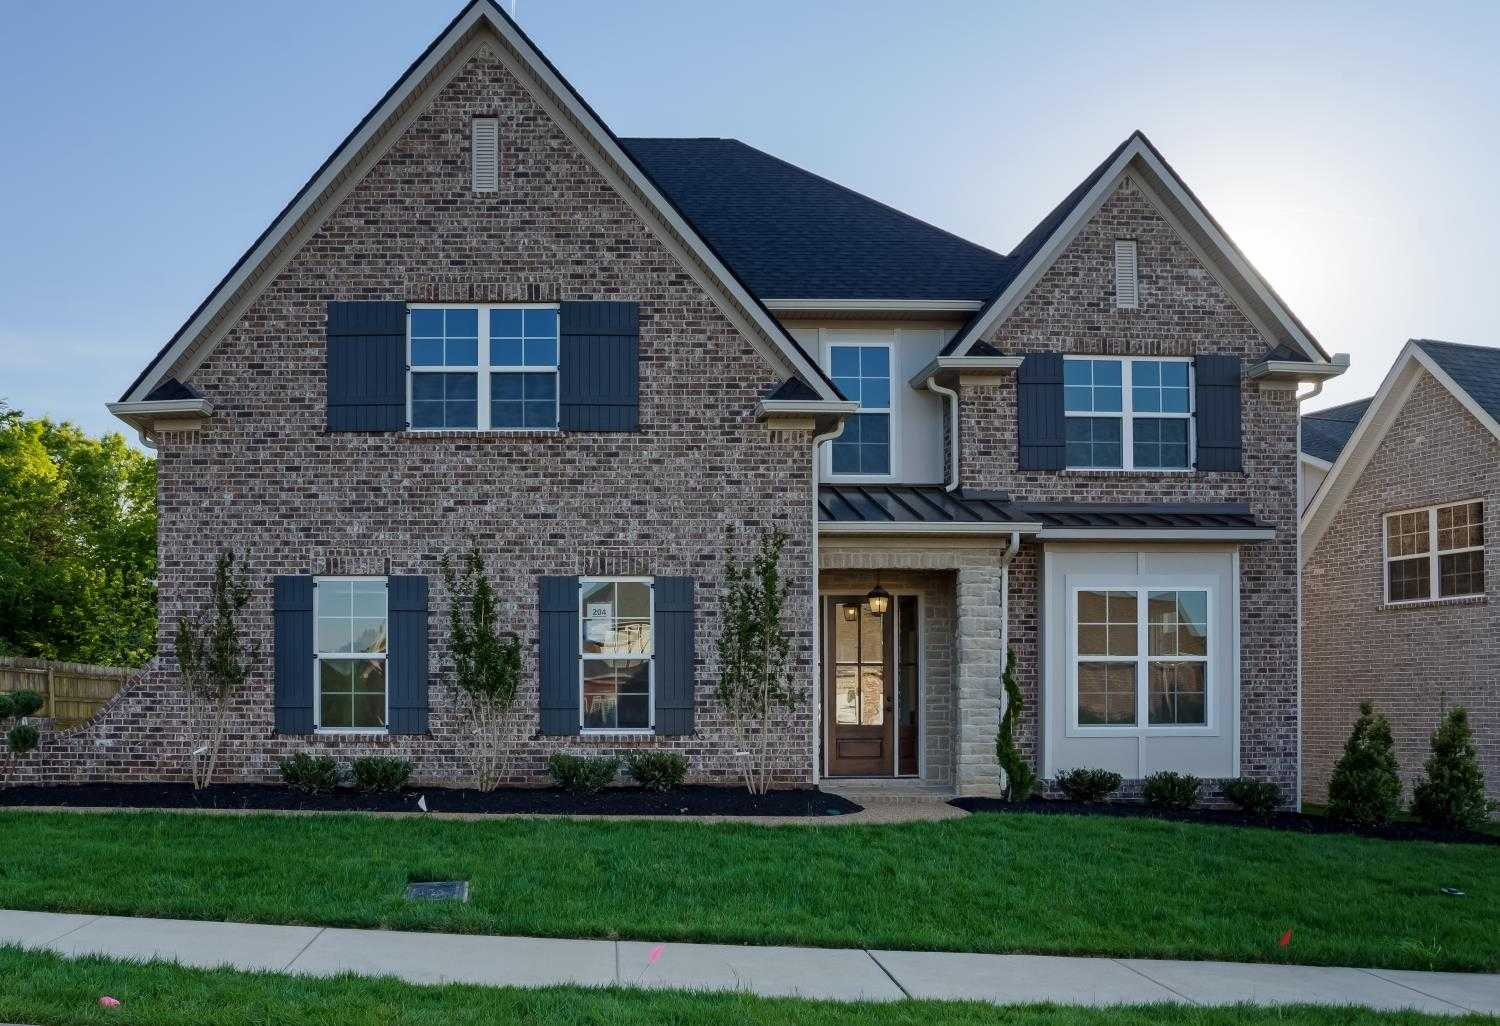 $529,900 - 4Br/4Ba -  for Sale in Aarons Cress, Hermitage